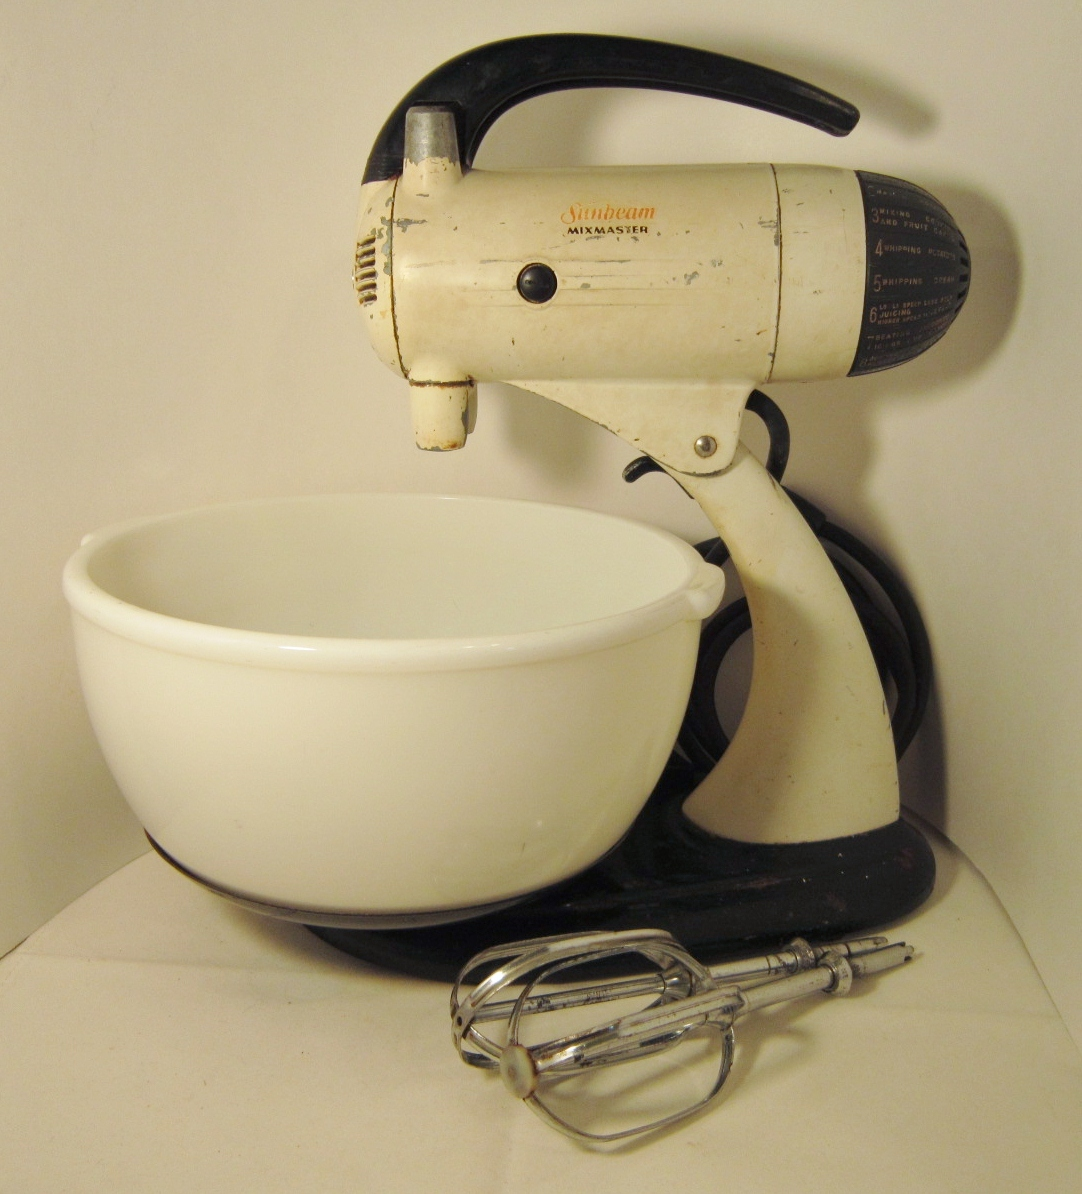 Sunbeam mixmaster model 9  bowl and beaters 01a